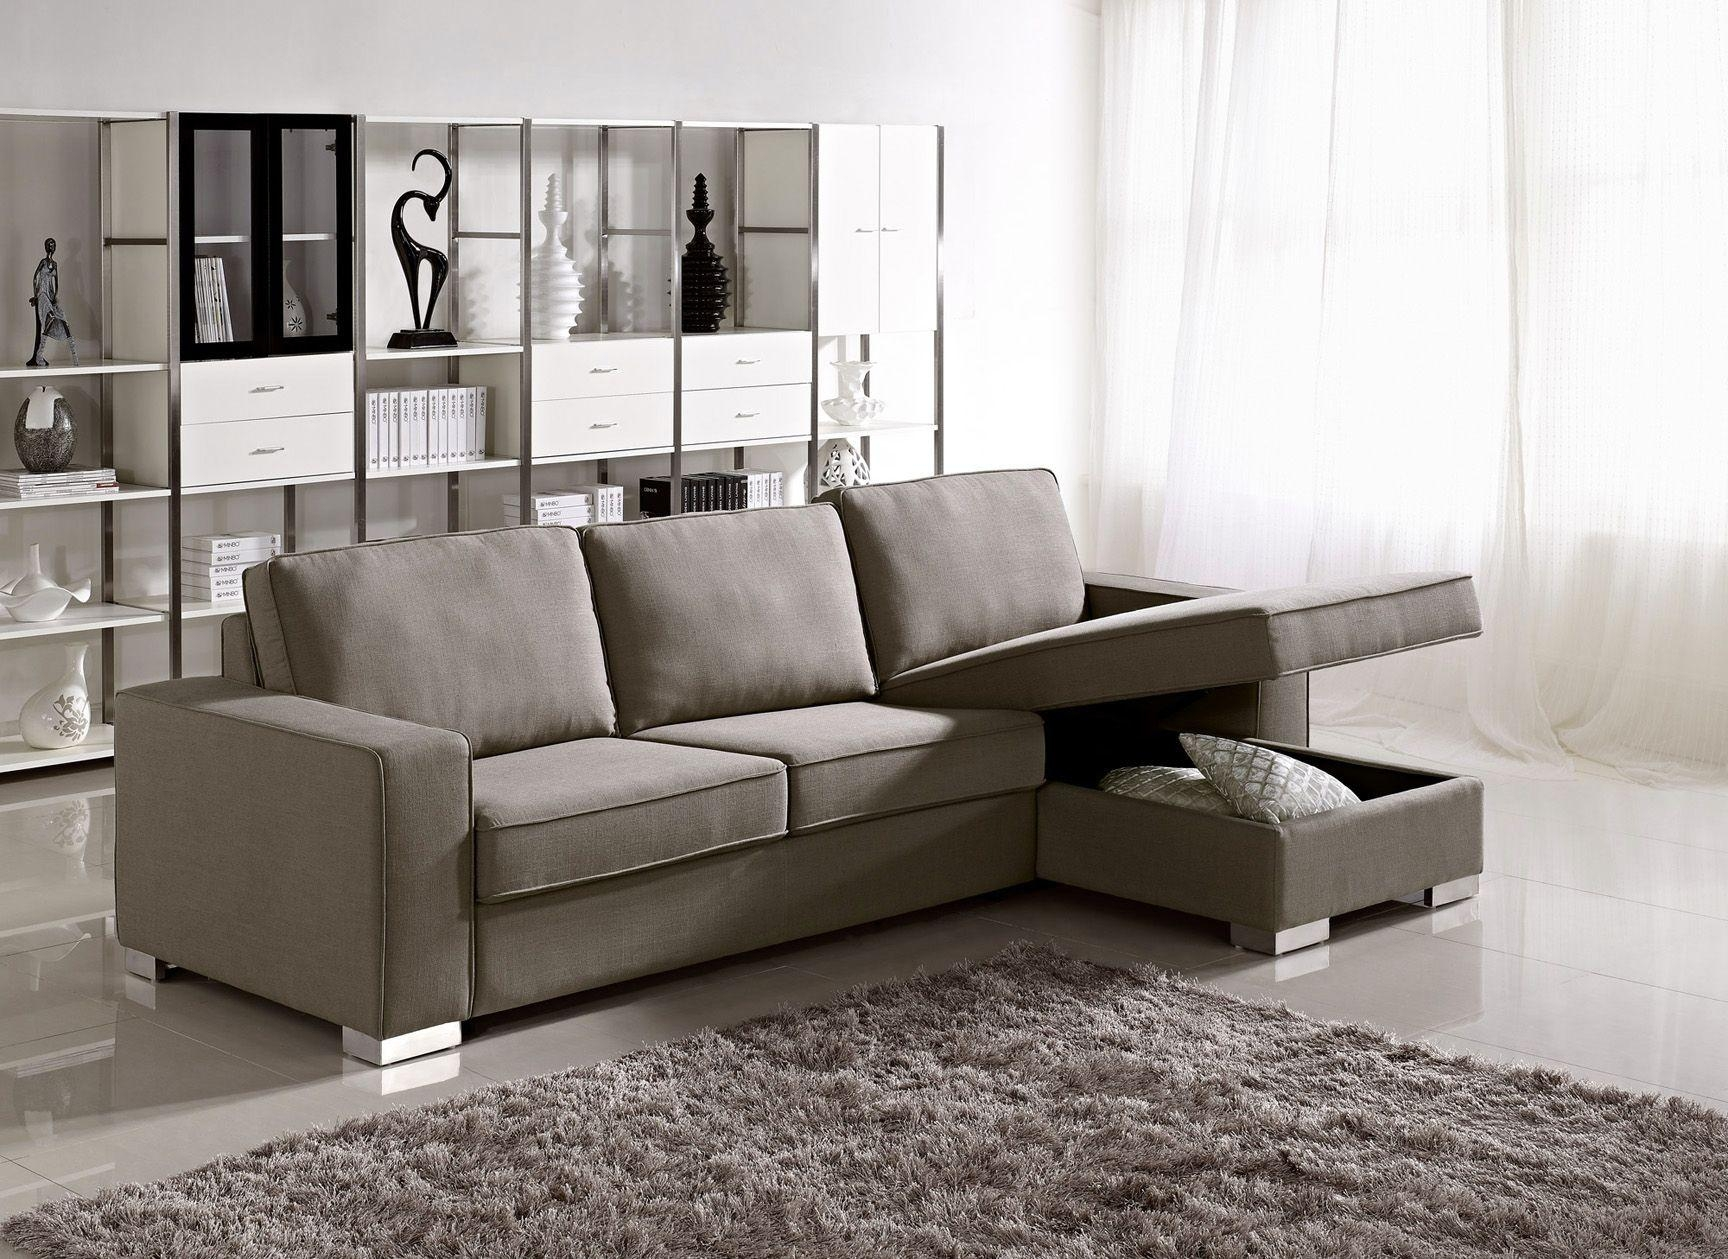 15 choices of apartment sectional sofa with chaise